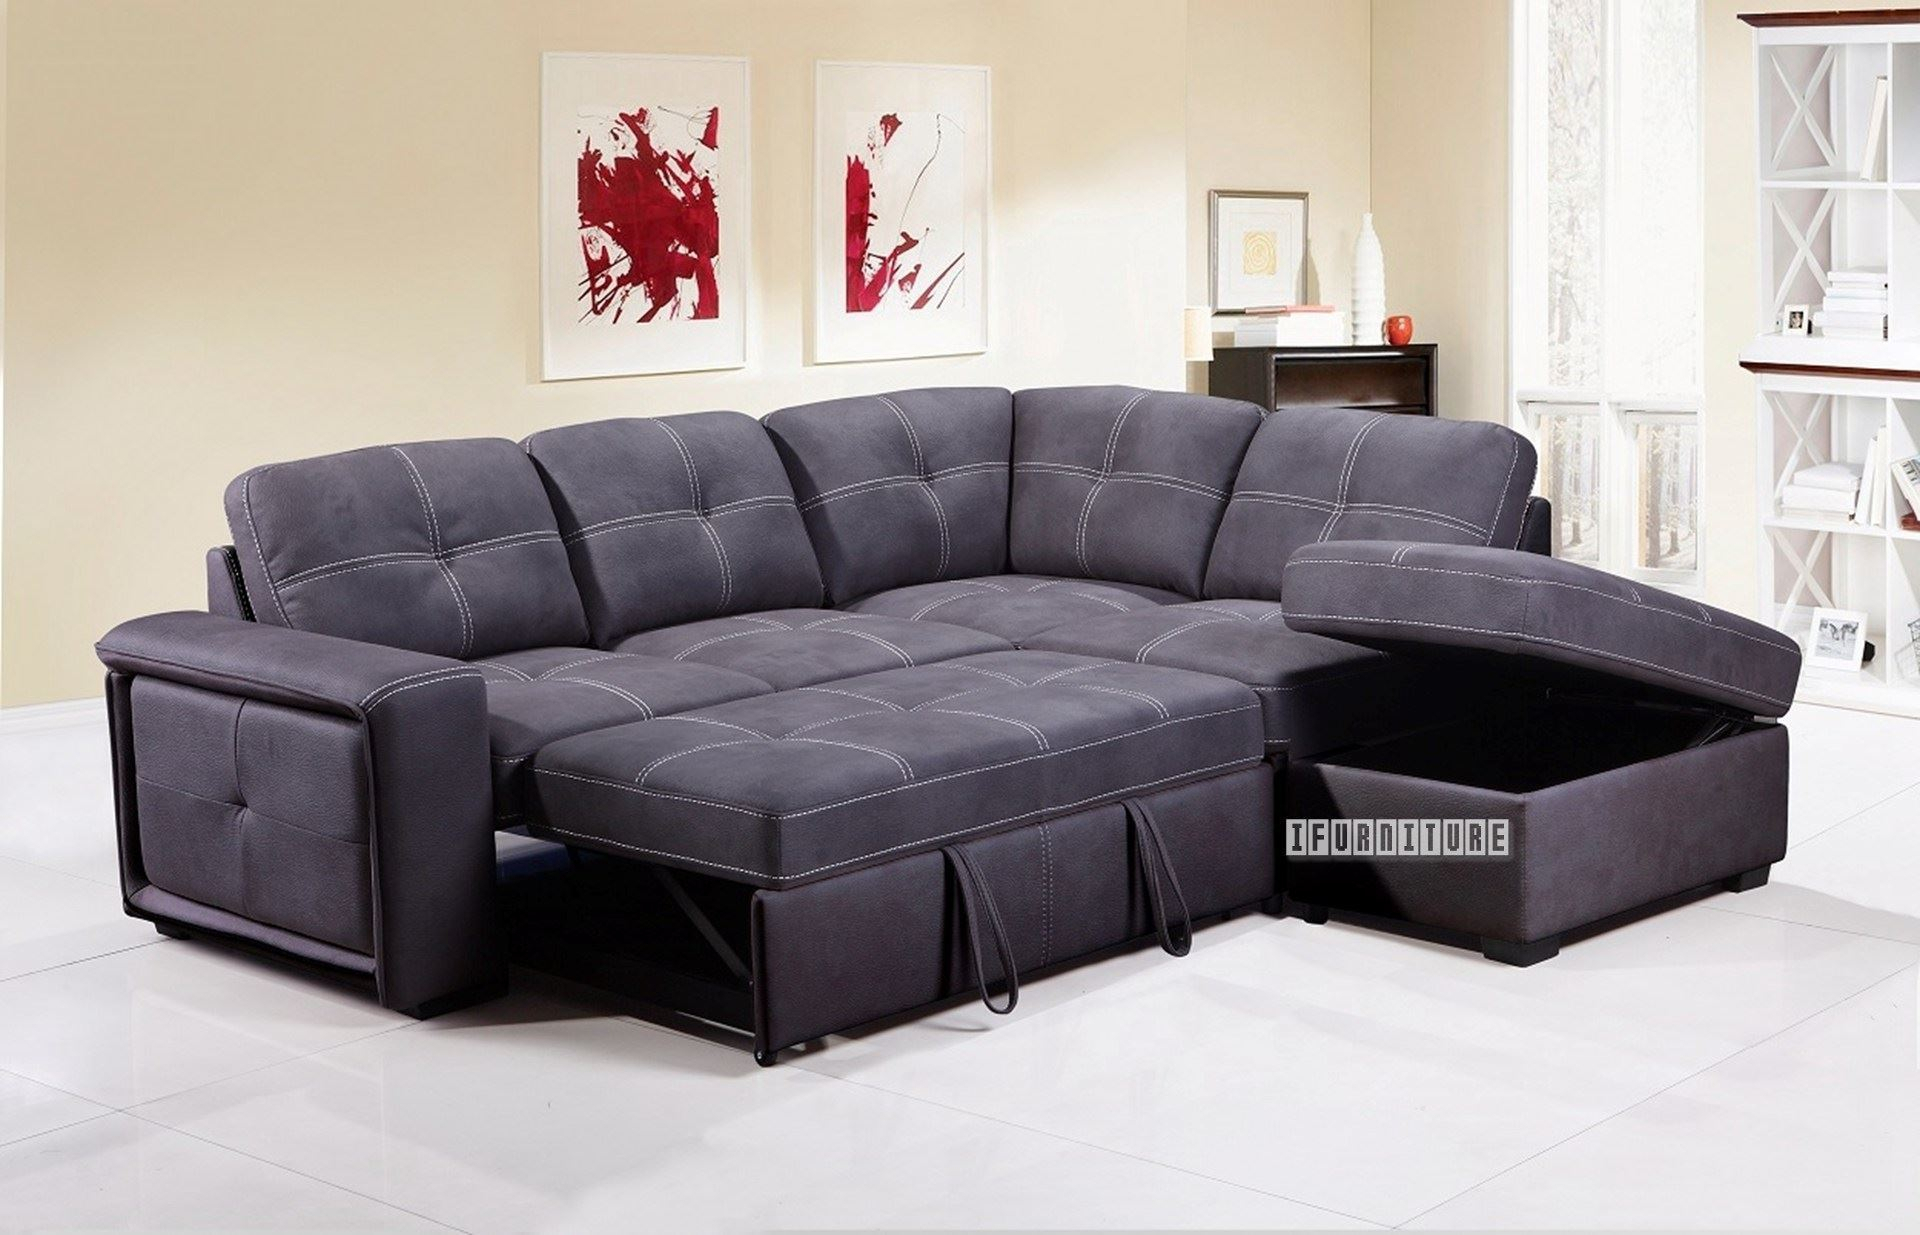 Bellini Sectional Sofa Bed With Storage *Grey With Sectional Sofas With Storage (View 3 of 15)